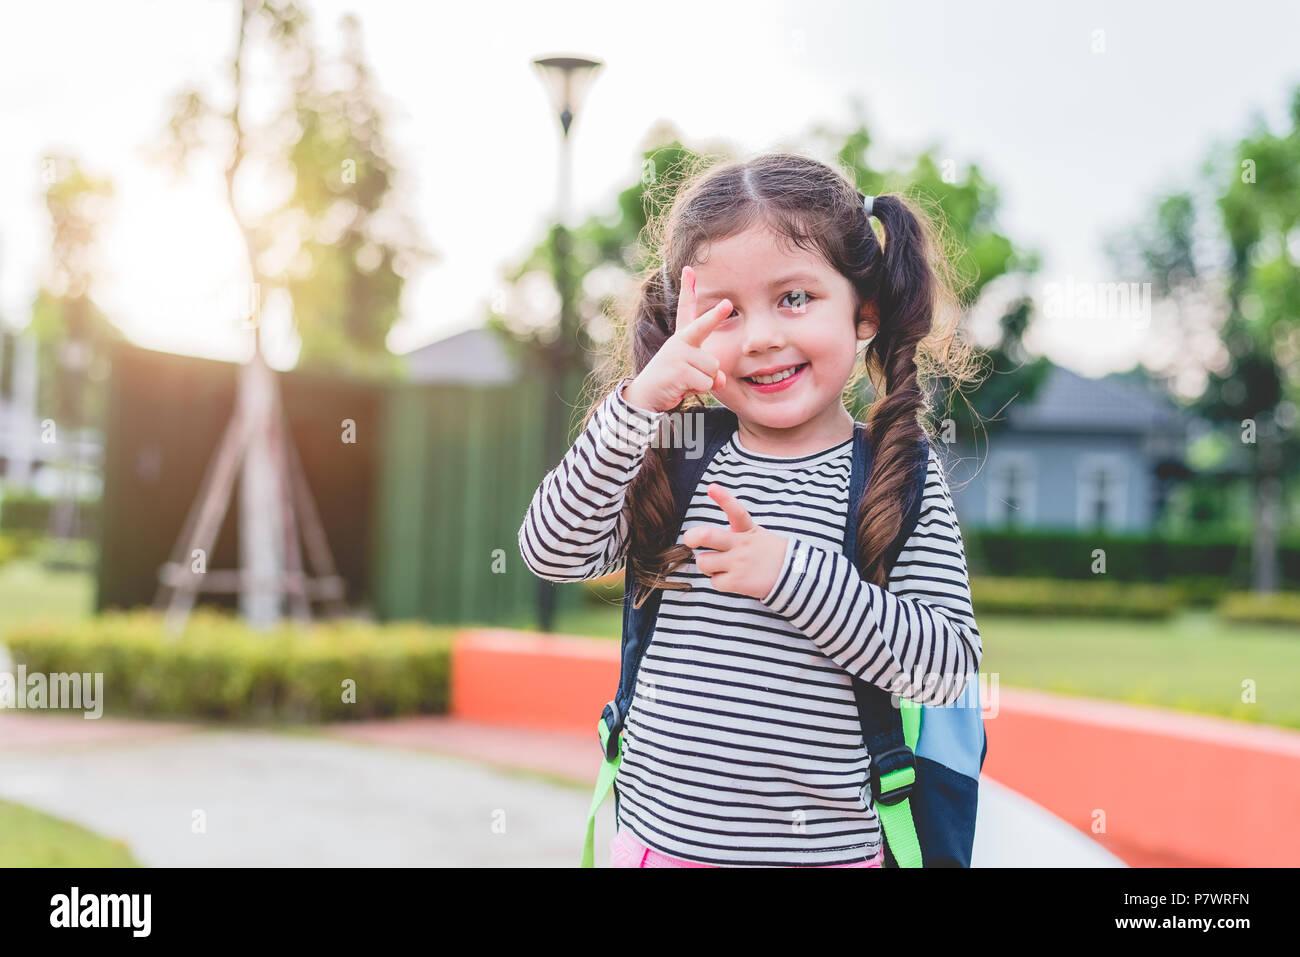 0947d580293e9 Happy little girl enjoy going to school. Back to school and Education  concept. Happy life and family lifestyle theme.